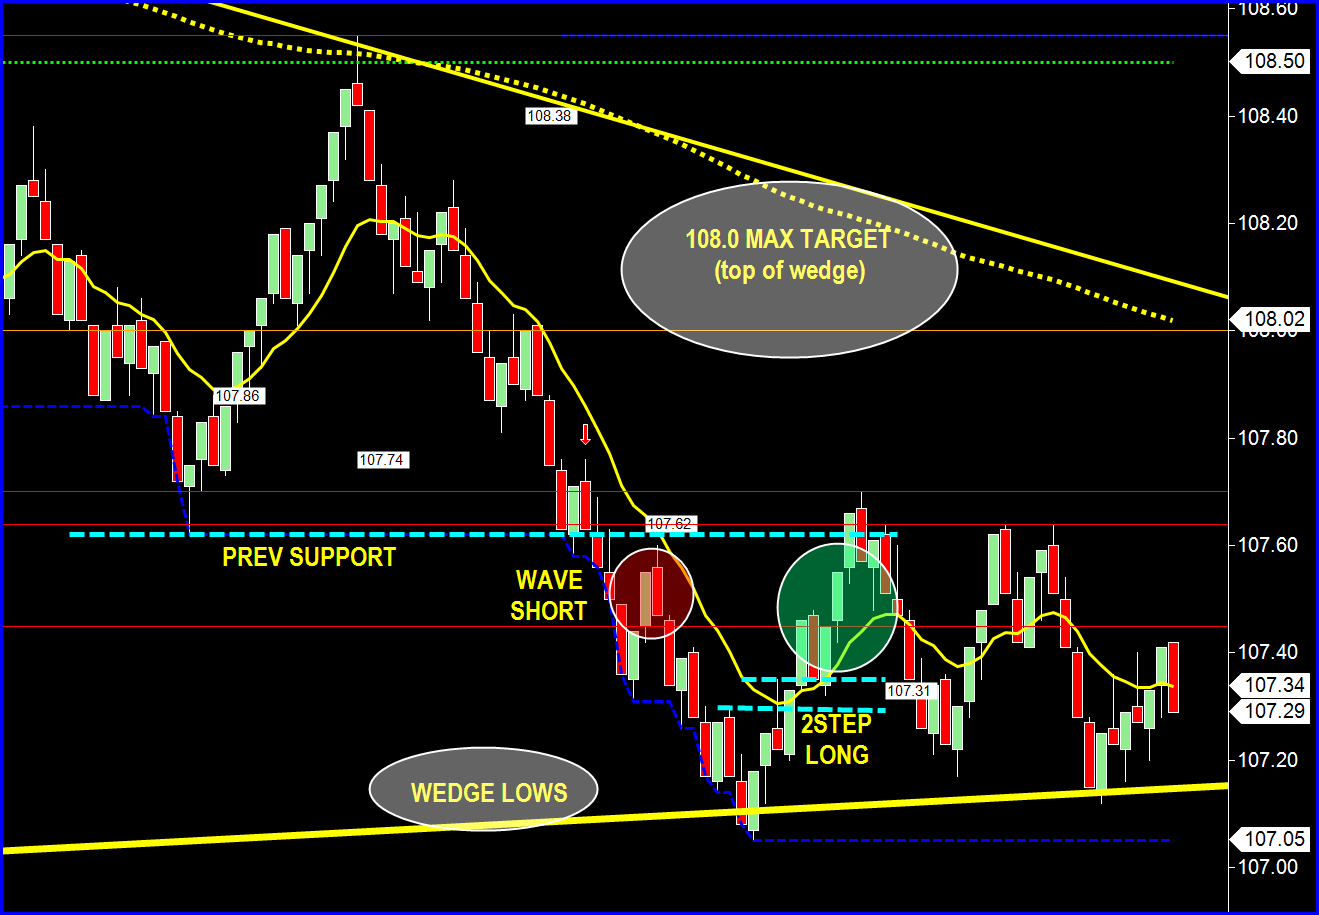 Crude trading strategies